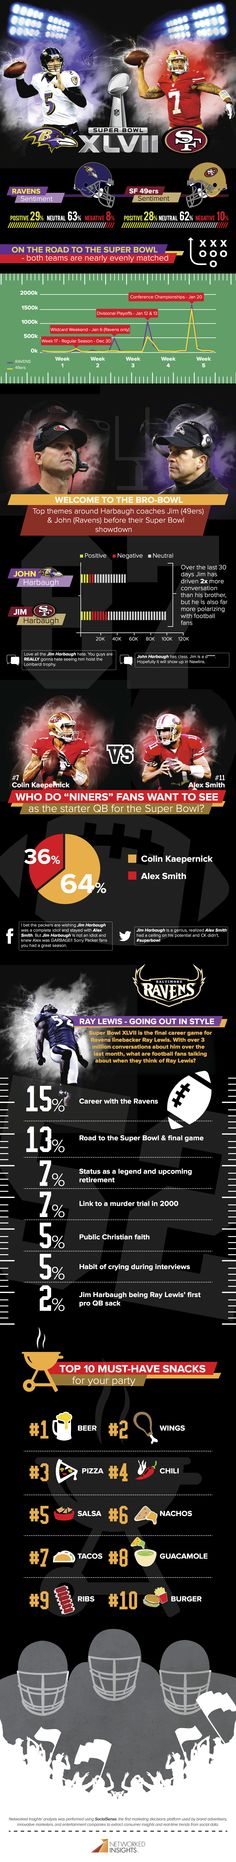 Super Bowl XLVII and social media [infographic] - Holy Kaw!